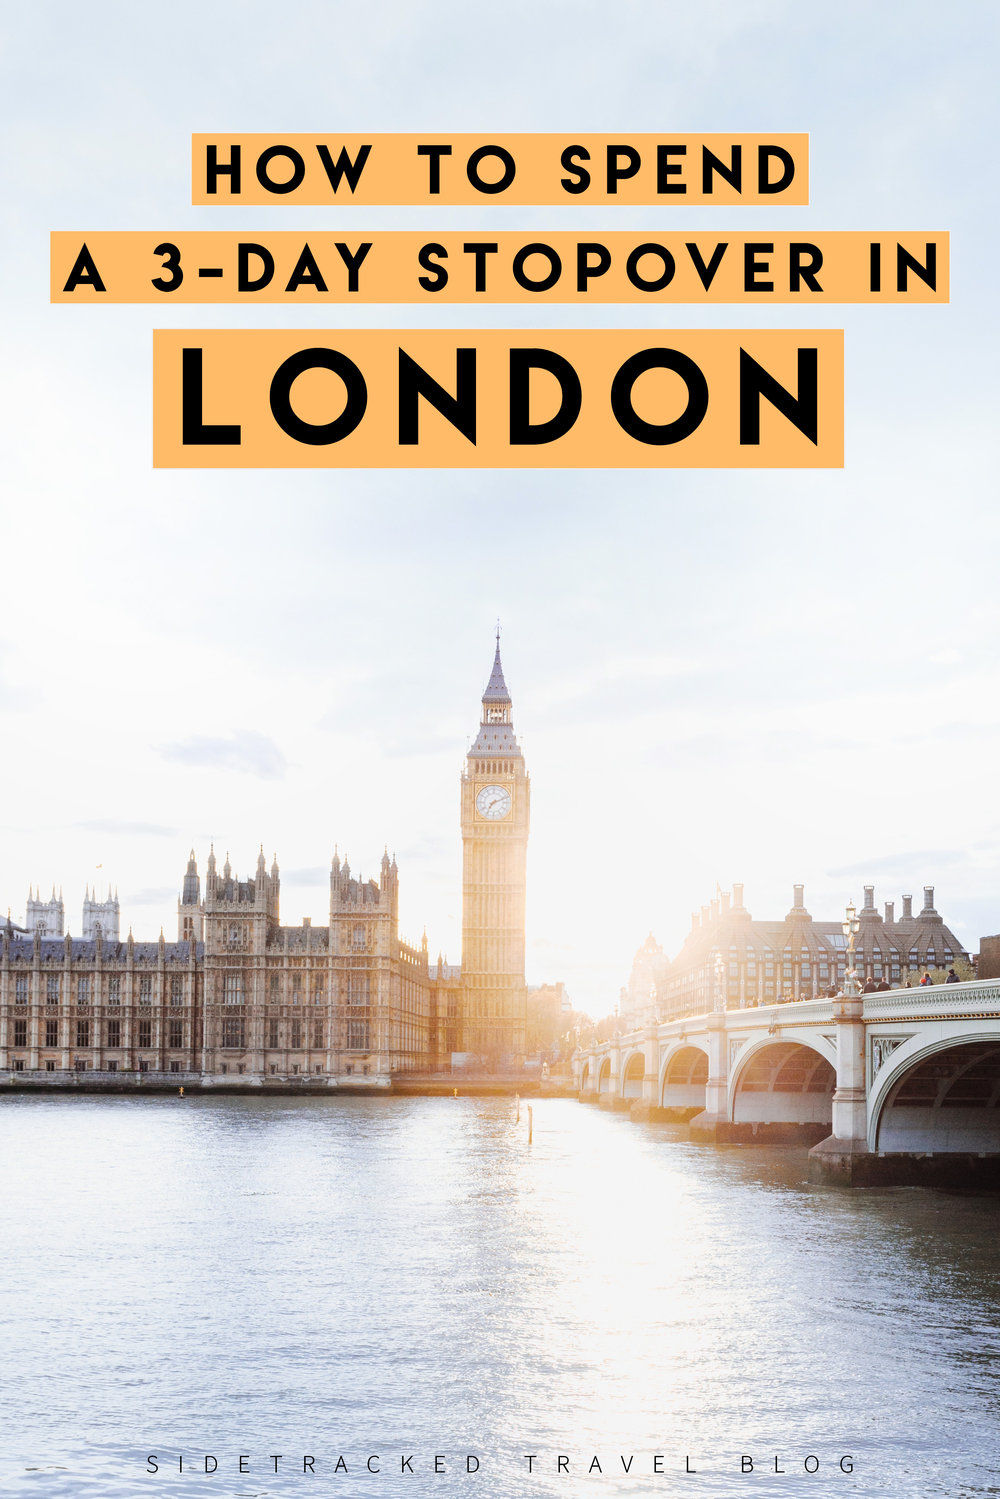 Despite being a vast and bustling city, it's entirely possible to see a good majority of London's main attractions in a tiny space of time. So if you've only got a few days, this 3-day guide aims to ensure that you'll make the absolute most out of your visit!